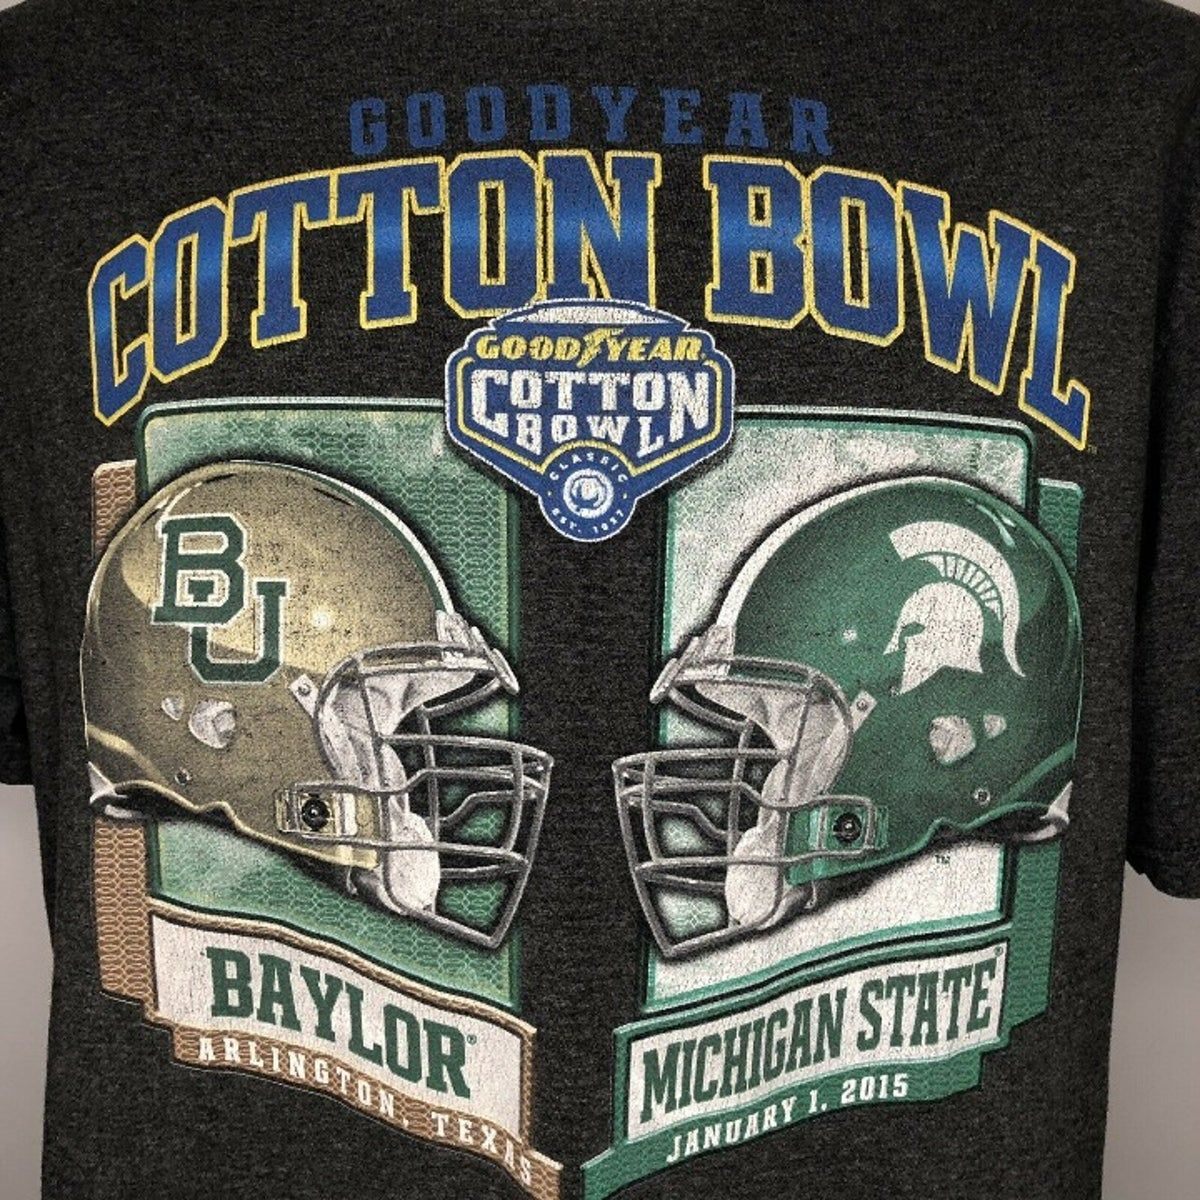 2015 Cotton Bowl T Shirt Michigan State in 2020 Cotton